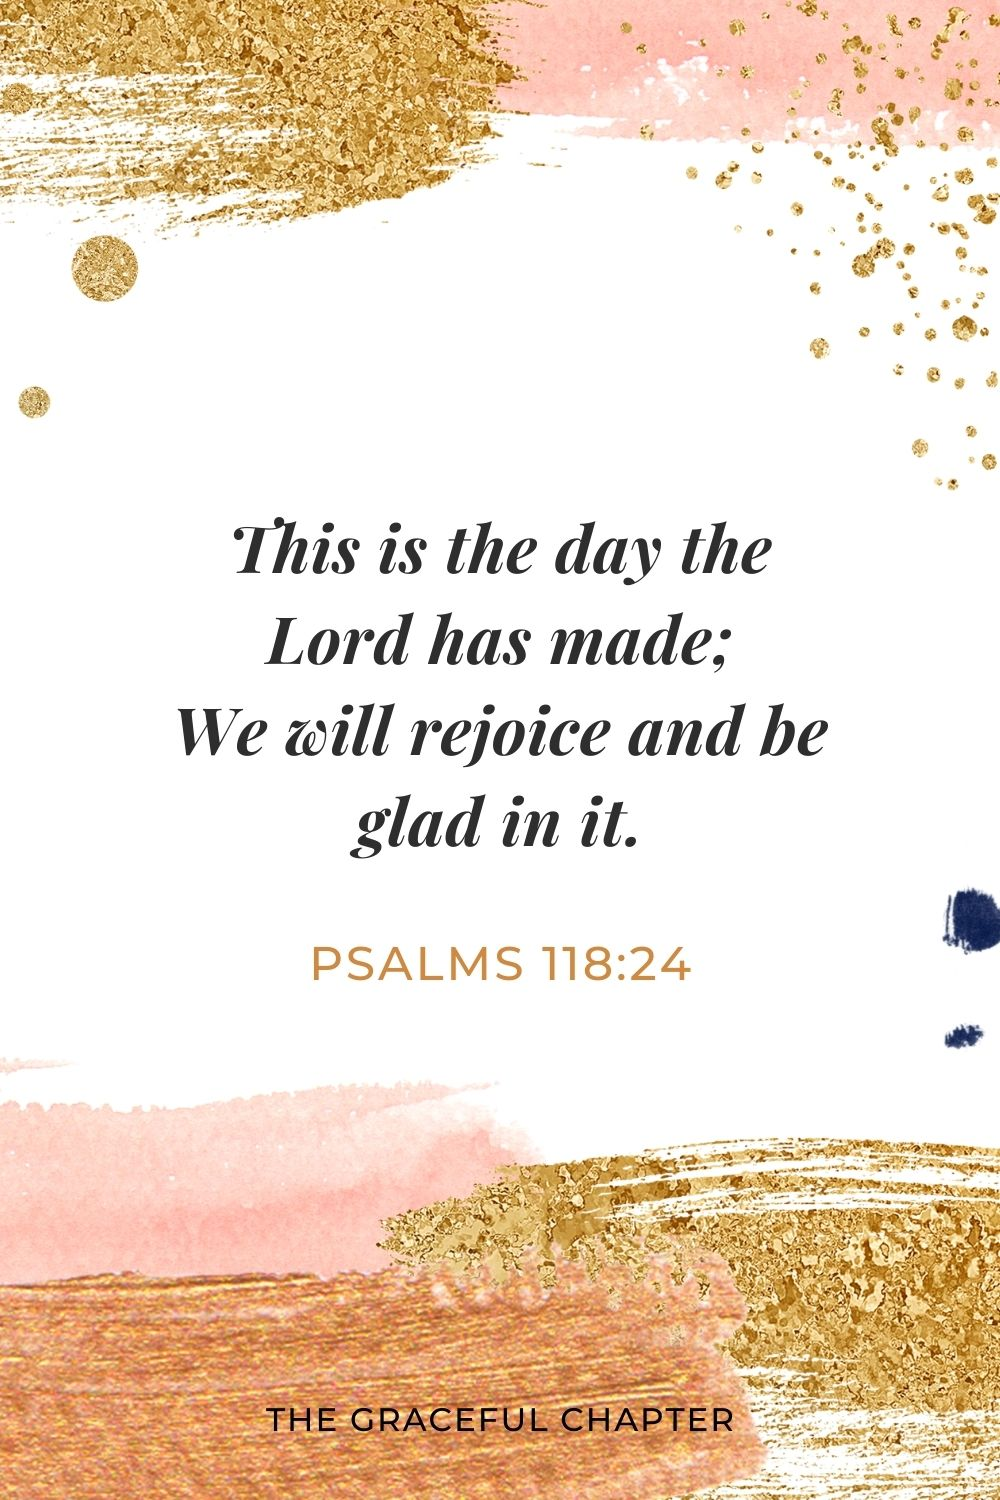 This is the day the Lord has made; We will rejoice and be glad in it. Psalms 118:24